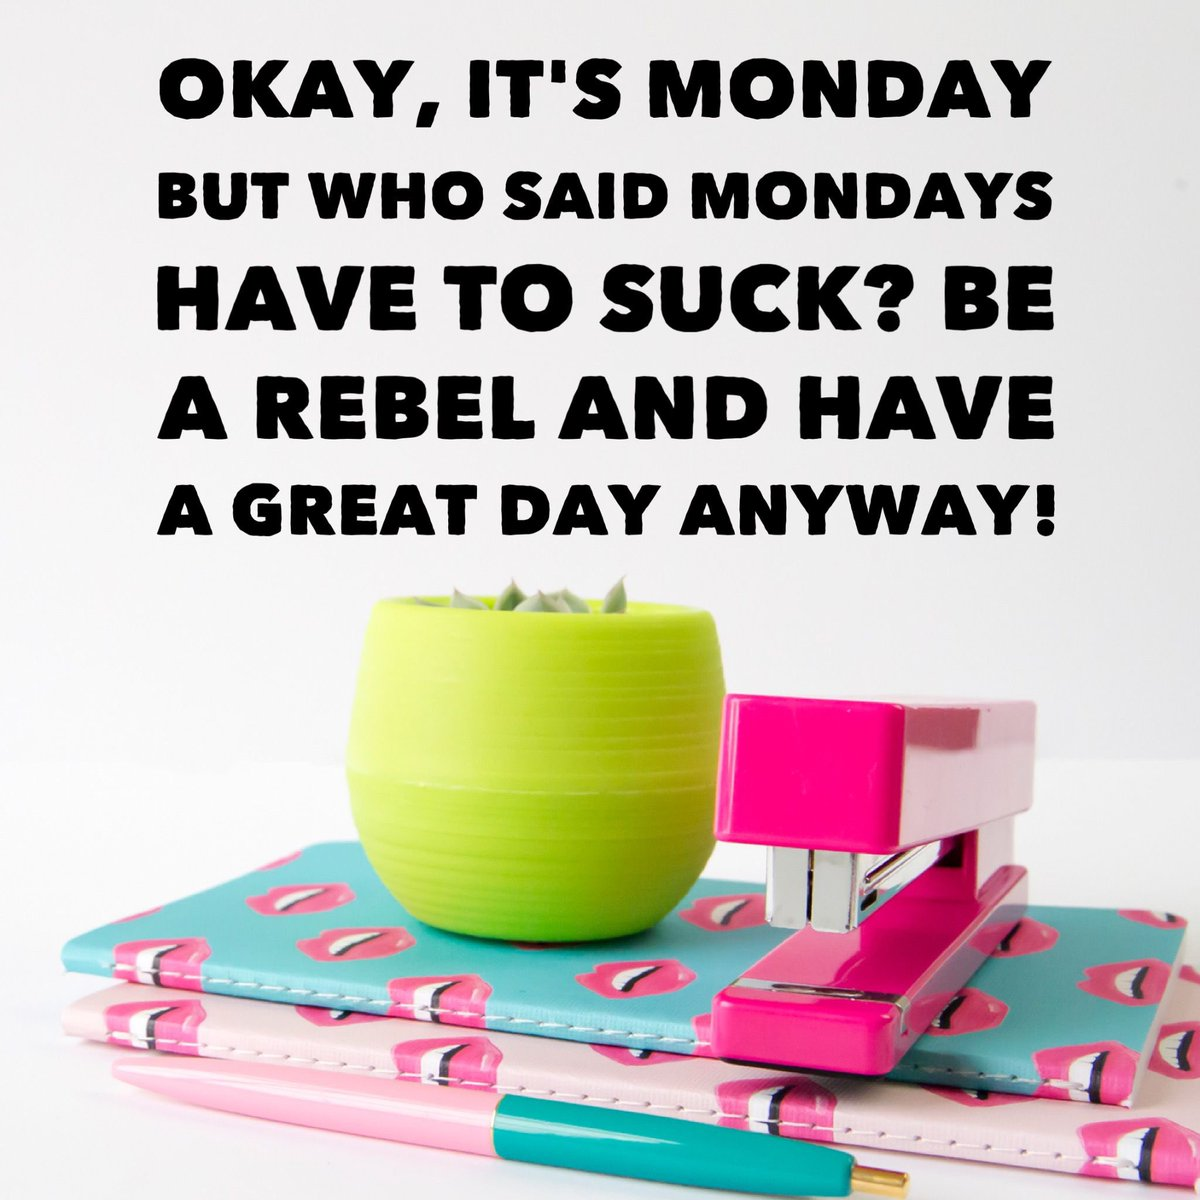 Okay, it's Monday 💕 But who said Monday's have to suck? Be a #rebel and have a #great #day anyway!!   #monday #morning #coffee #goals #happy #believeinyourself #inspiration #motivation #fitfam #cleaneating #mealprep #exercise #run #hike #healthychoices